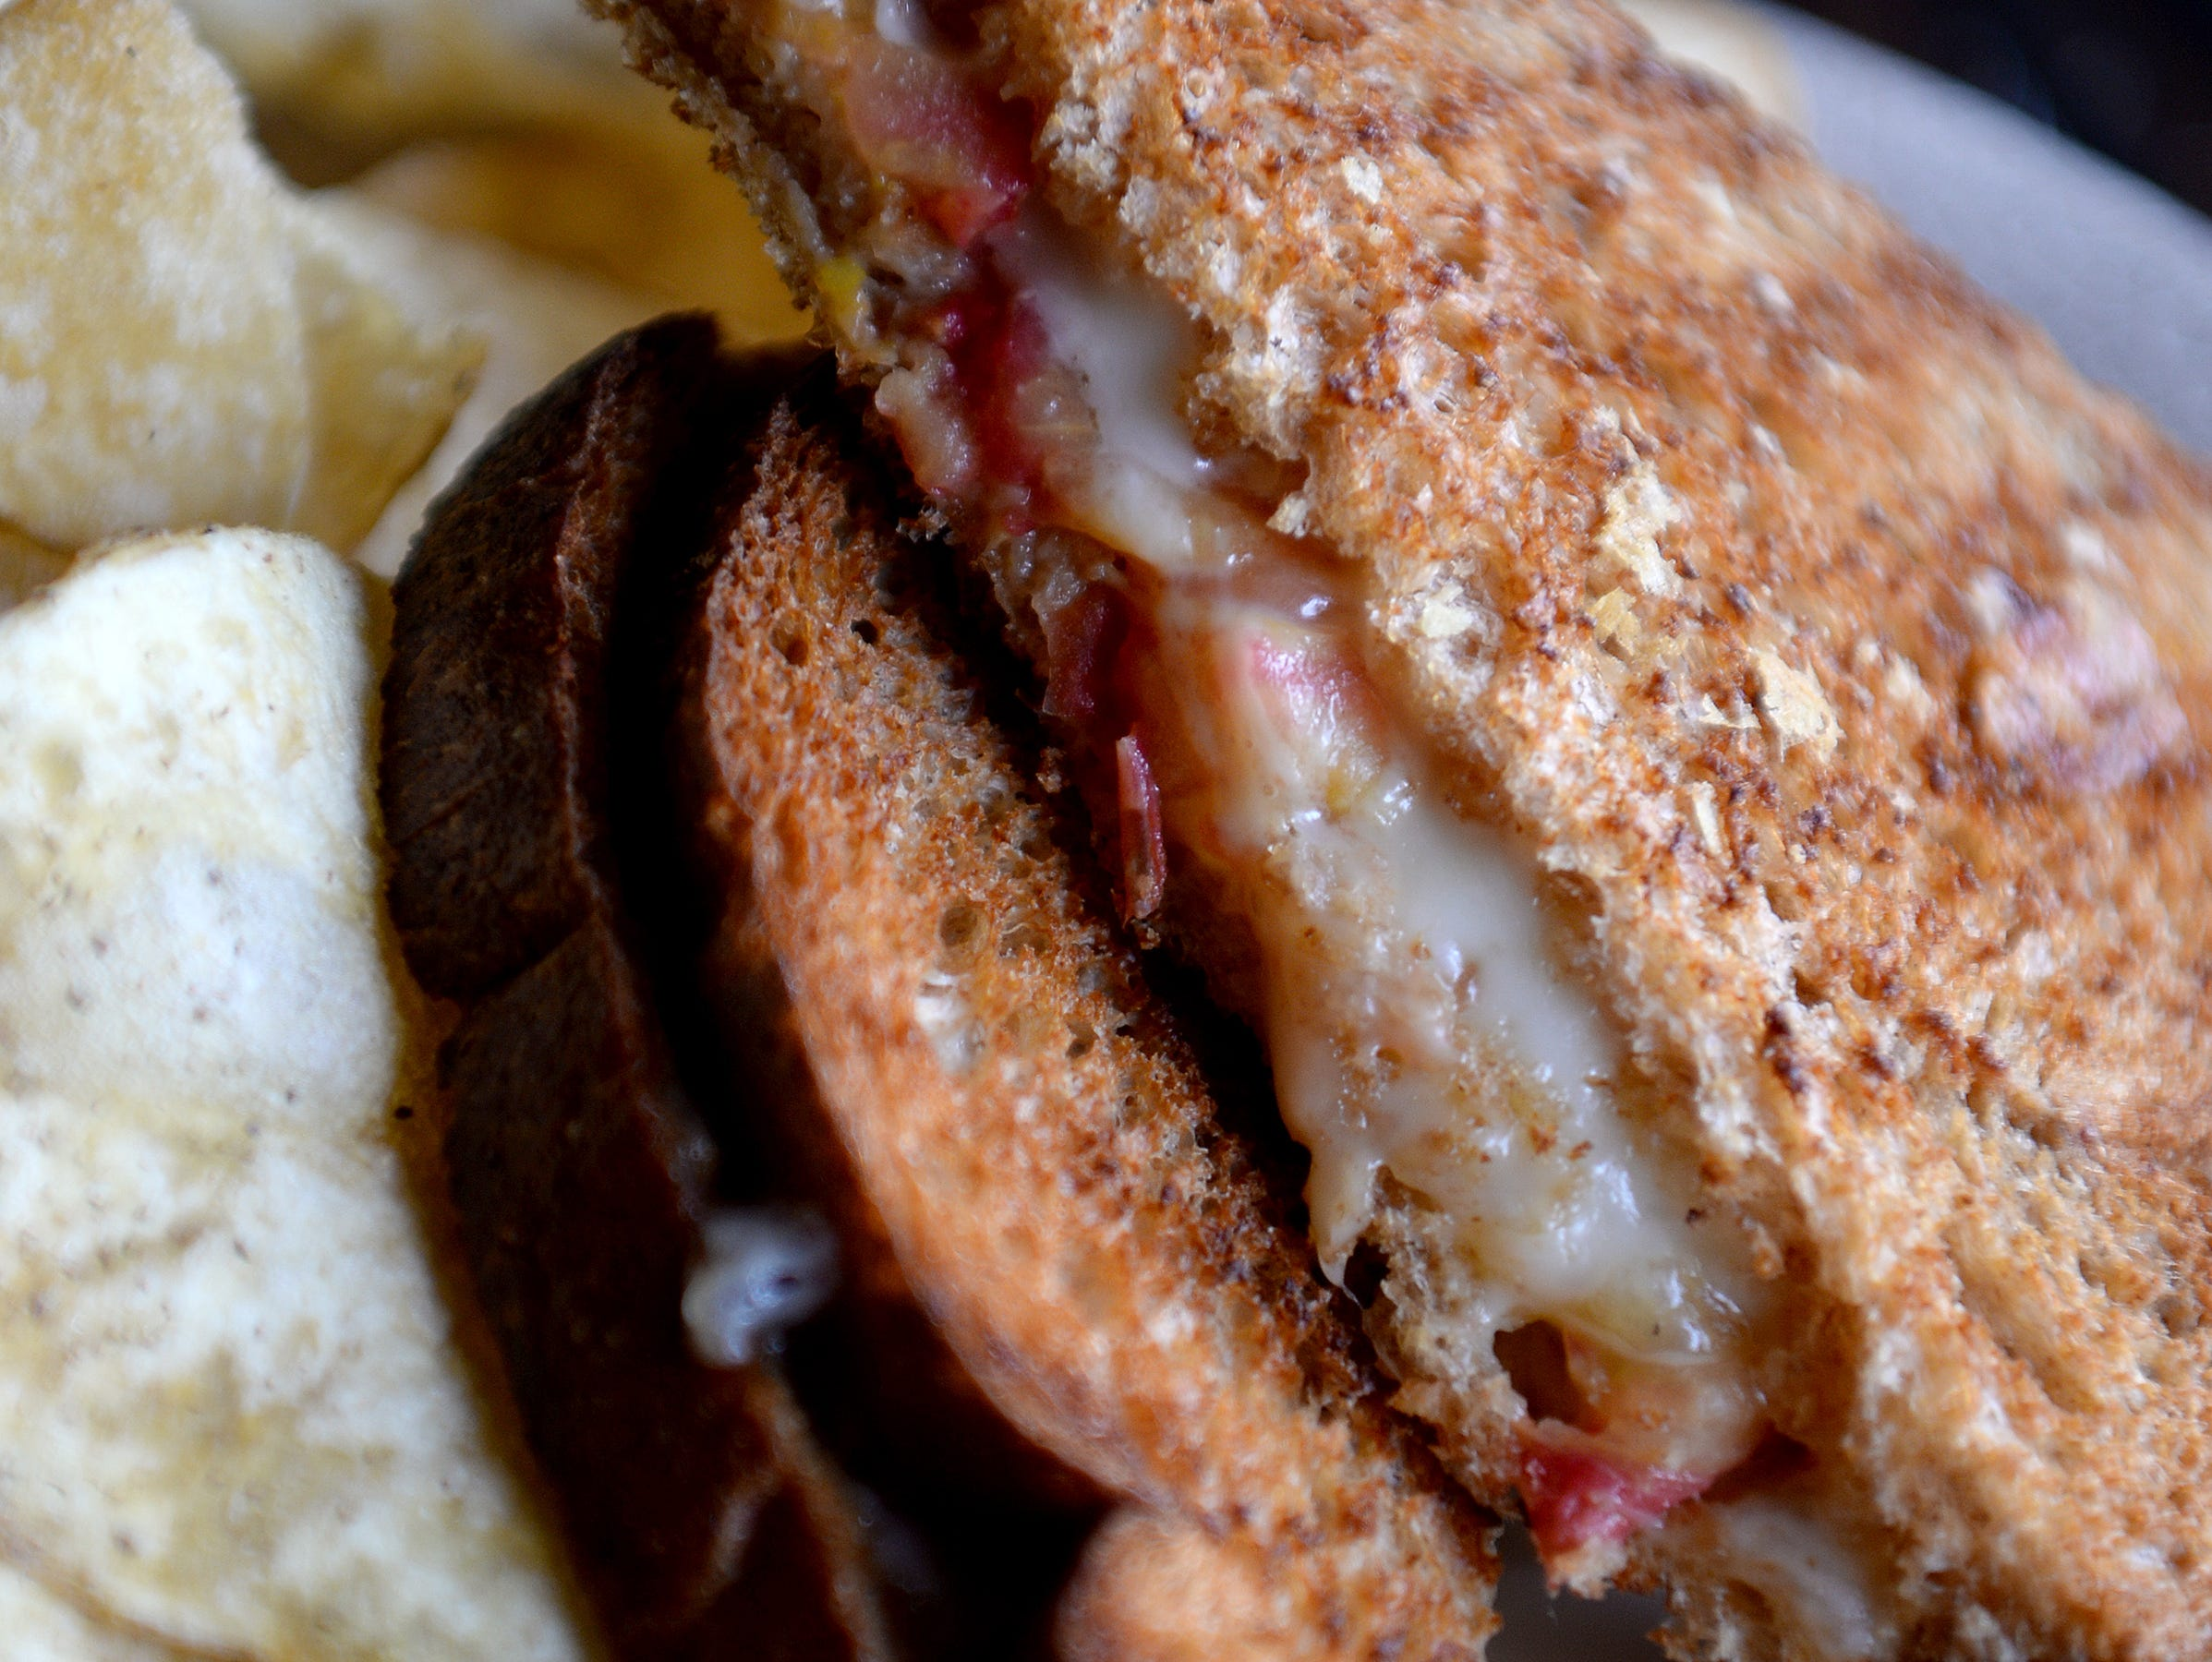 The Culture Club panini at Little Jumbo is Fontina cheese and heirloom tomato on Annie's organic wheat bread. Their sandwiches are accompanied by salt and pepper chips from The Gourmet Chip Co.